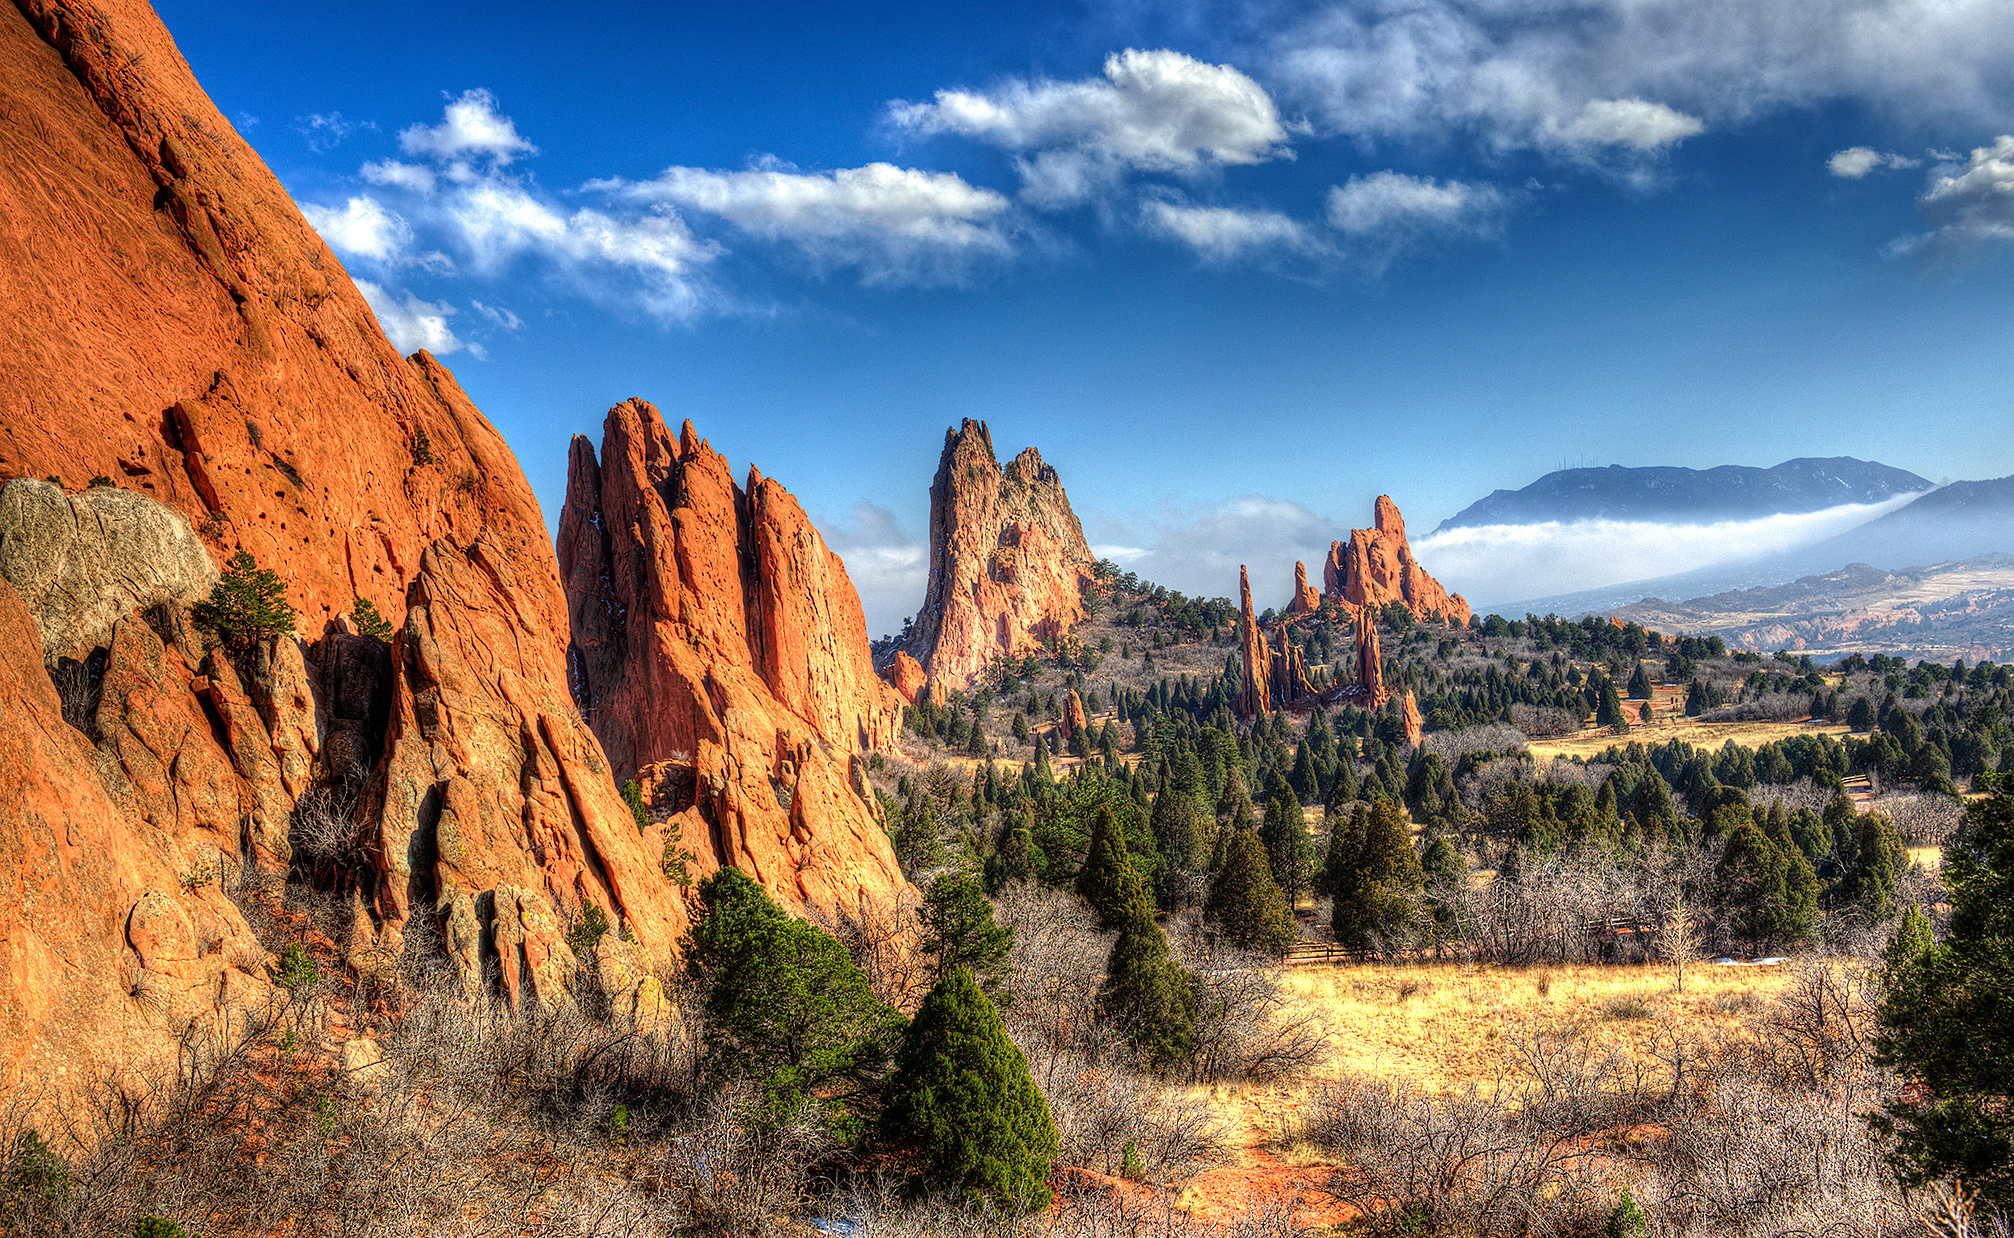 Top 12 easy hiking trails in colorado springs and pikes peak region for beginners colorado for Garden of the gods hiking trails